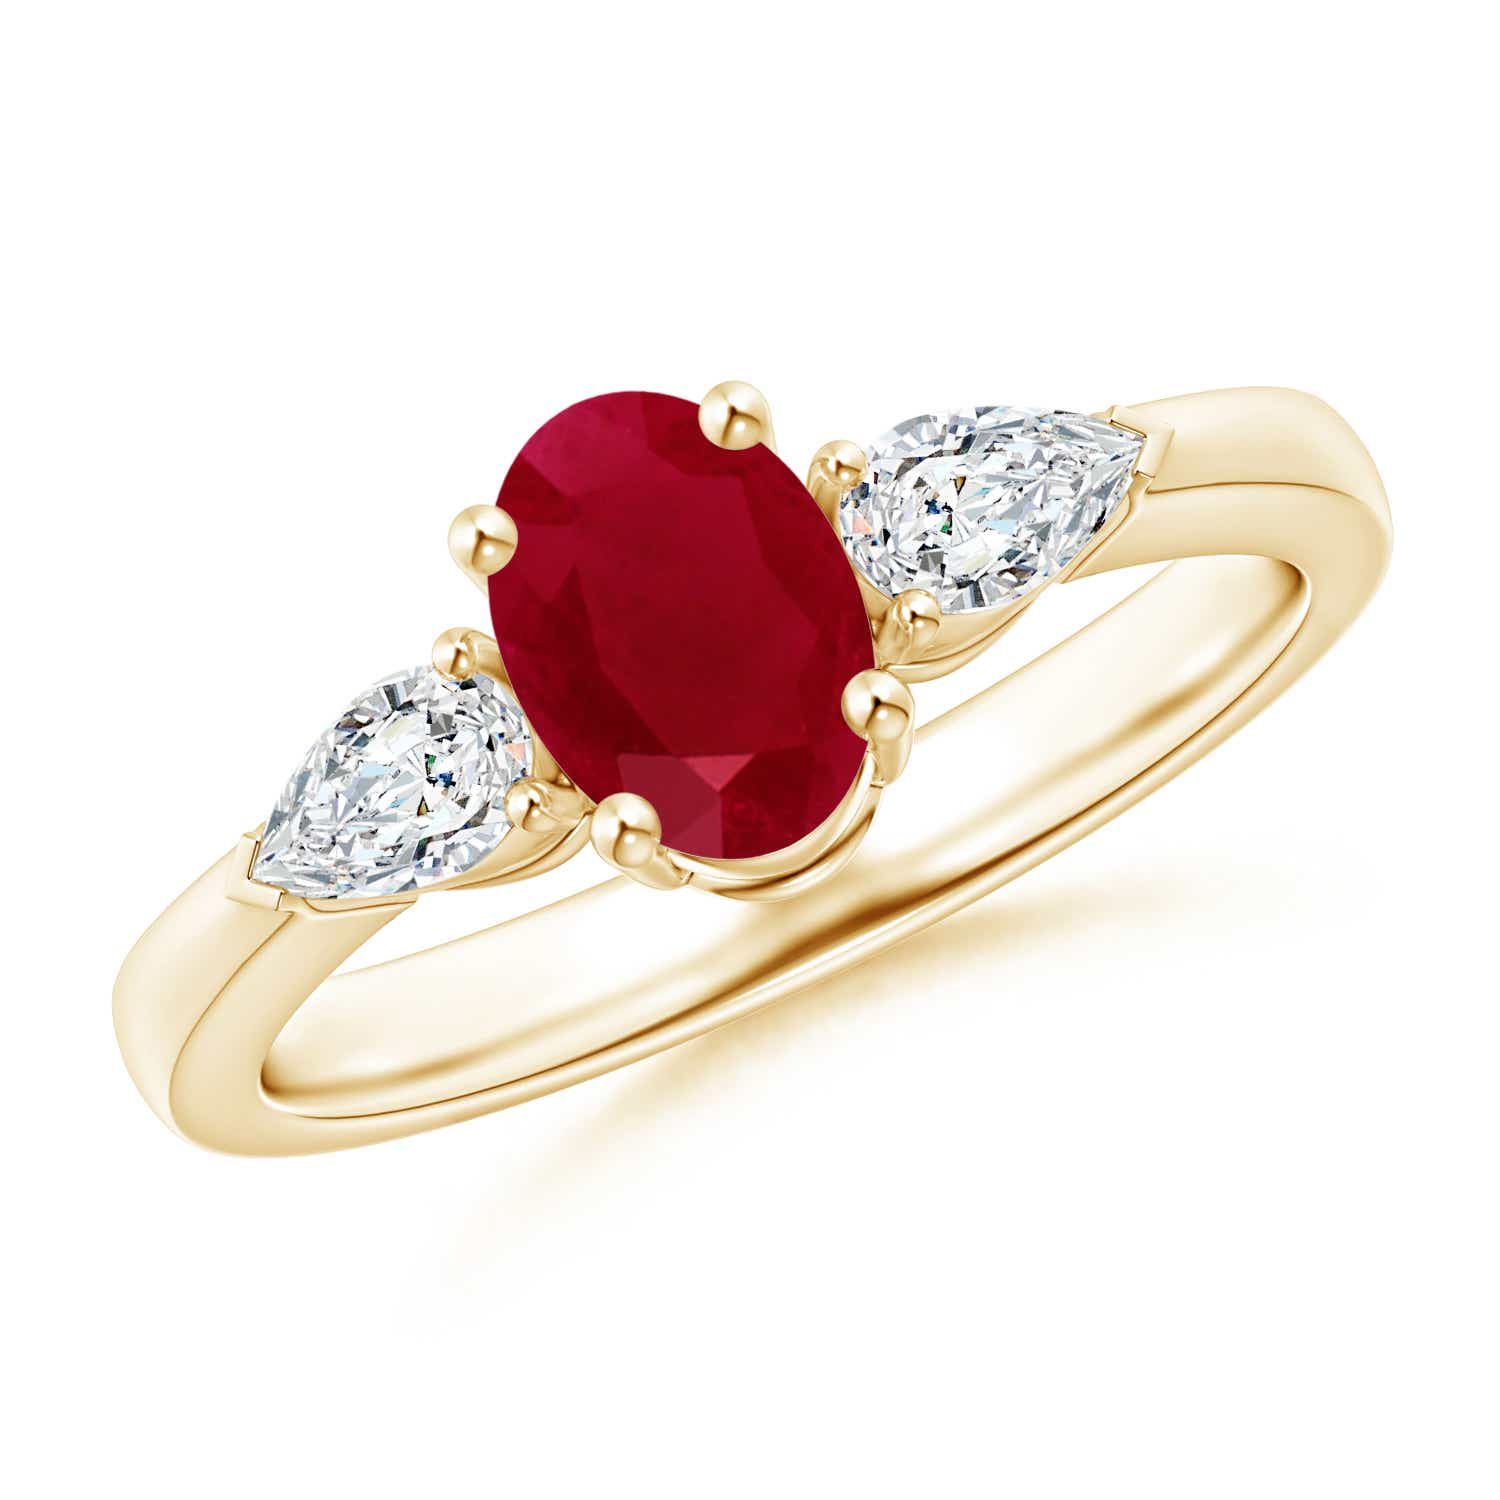 Angara Round Ruby Past Present Future Engagement Ring 6Sc8sE9eJT